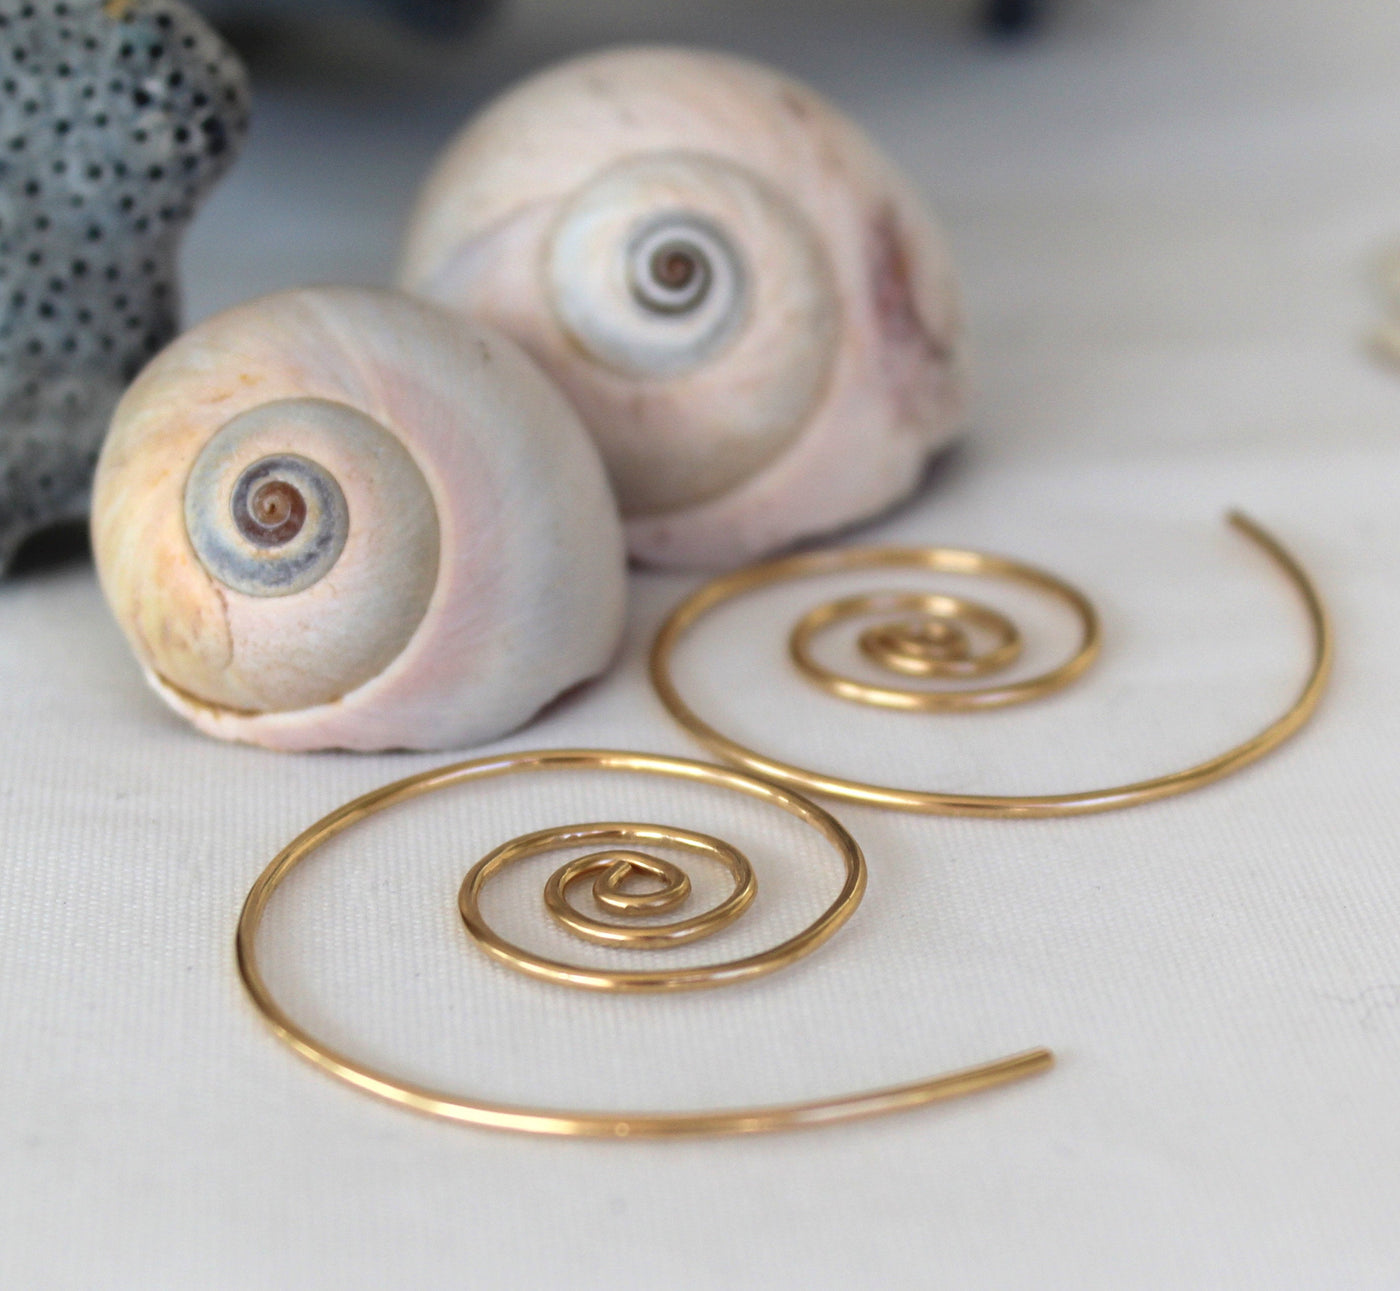 Nautilus gold filled wind in earrings, made in Nova Scotia, Canada., lovely everyday earrrings.